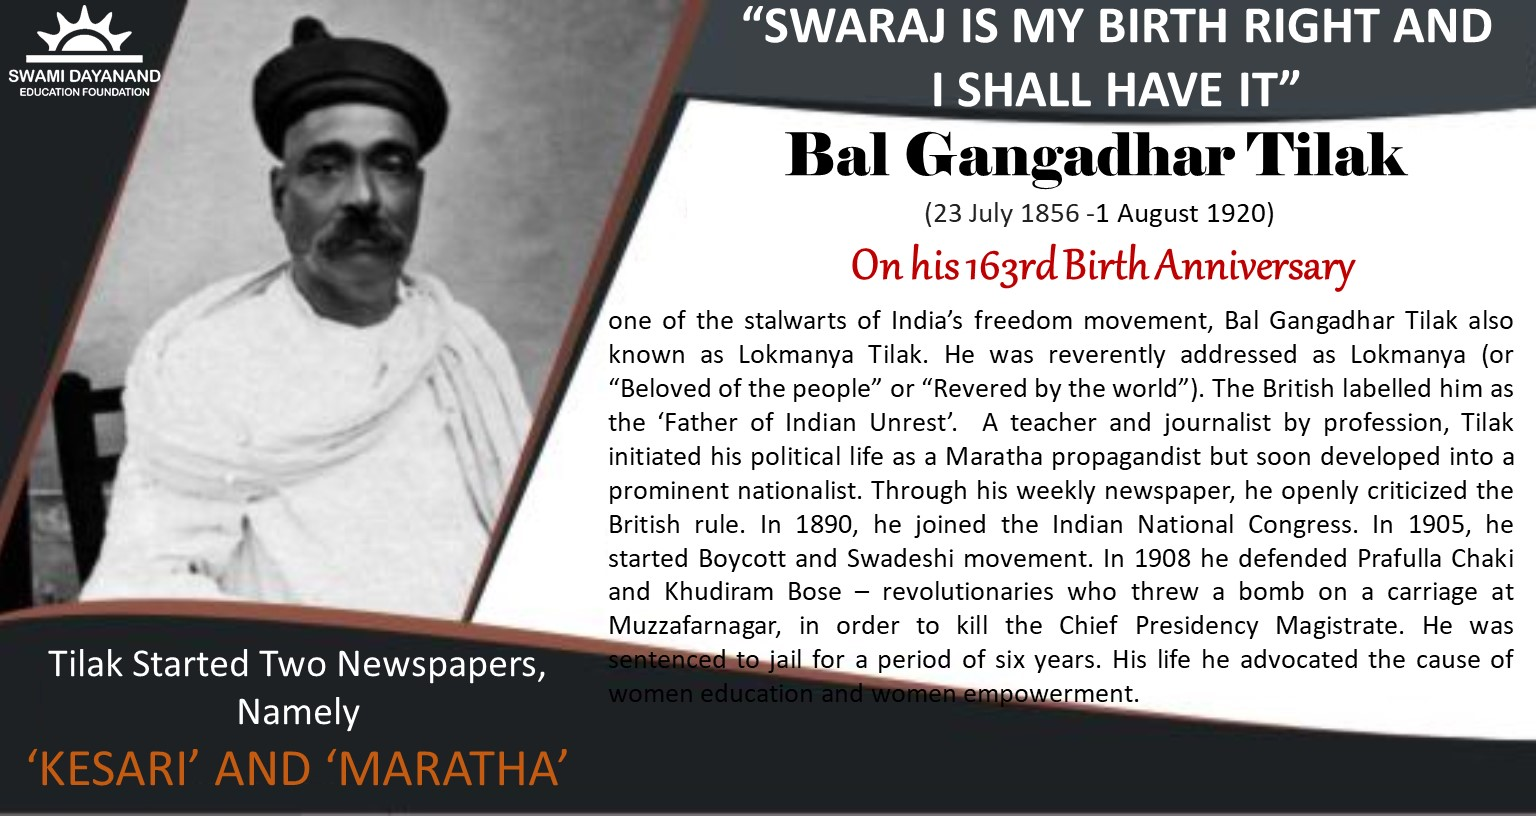 BAL GANGADHAR TILAK  (23rd July 1856 - 1st August 1920)